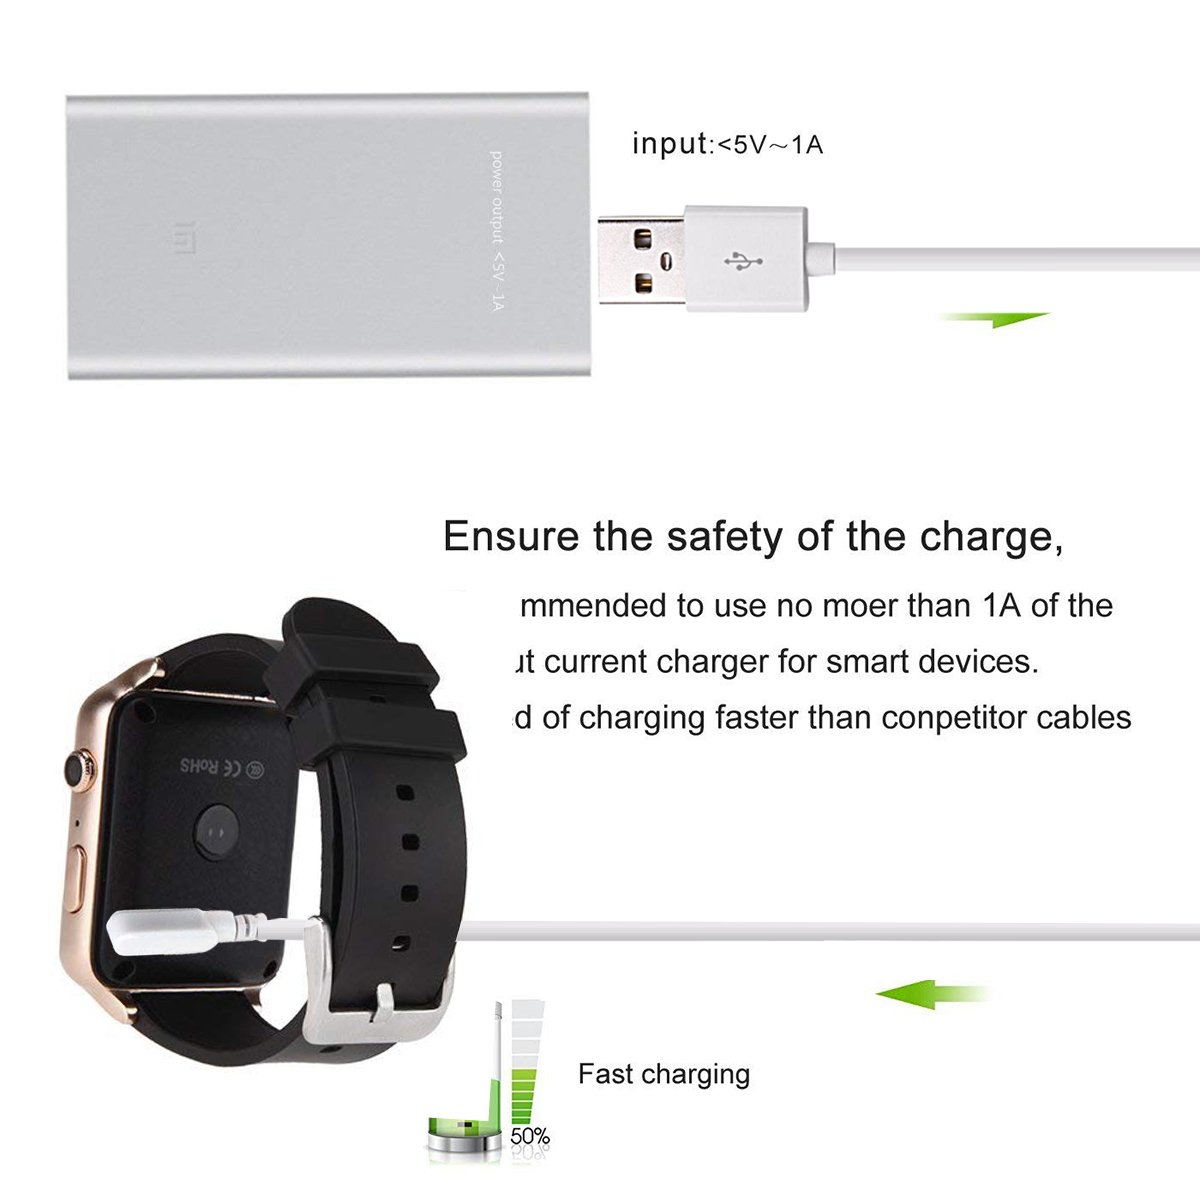 Charging Cable for Smart Watch,DOCA 4 Pins Magnetic Adsorption USB Charger Cable for Bluetooth Smart Watches: GT88, GT68, KW08, KW18, KW88, KW98, ...